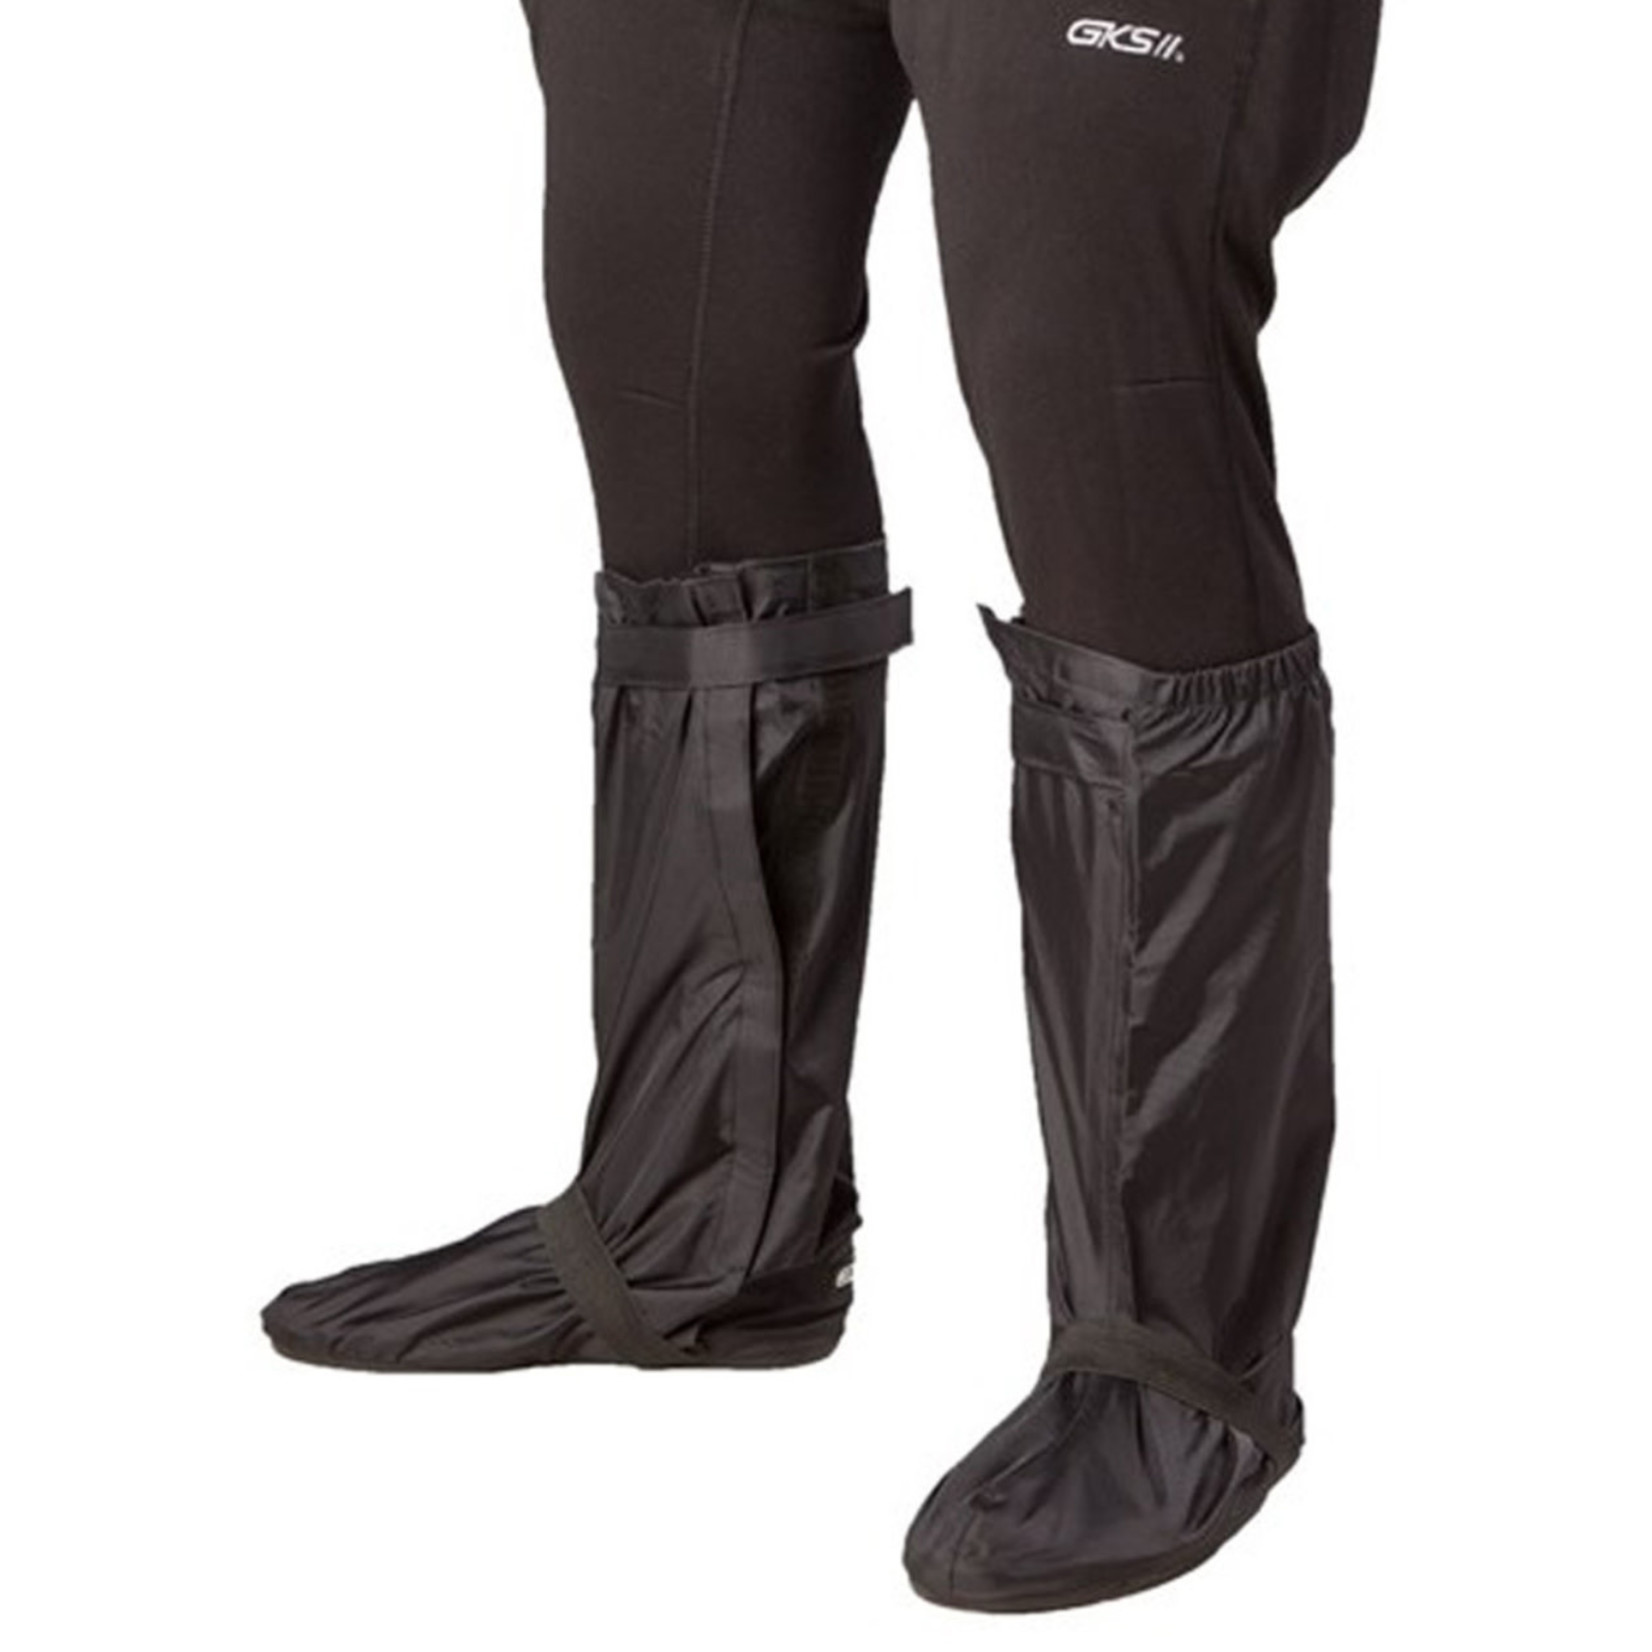 Gks GKS Motorcycle Waterproof Boot Covers 60-BOOT-NY 2XL